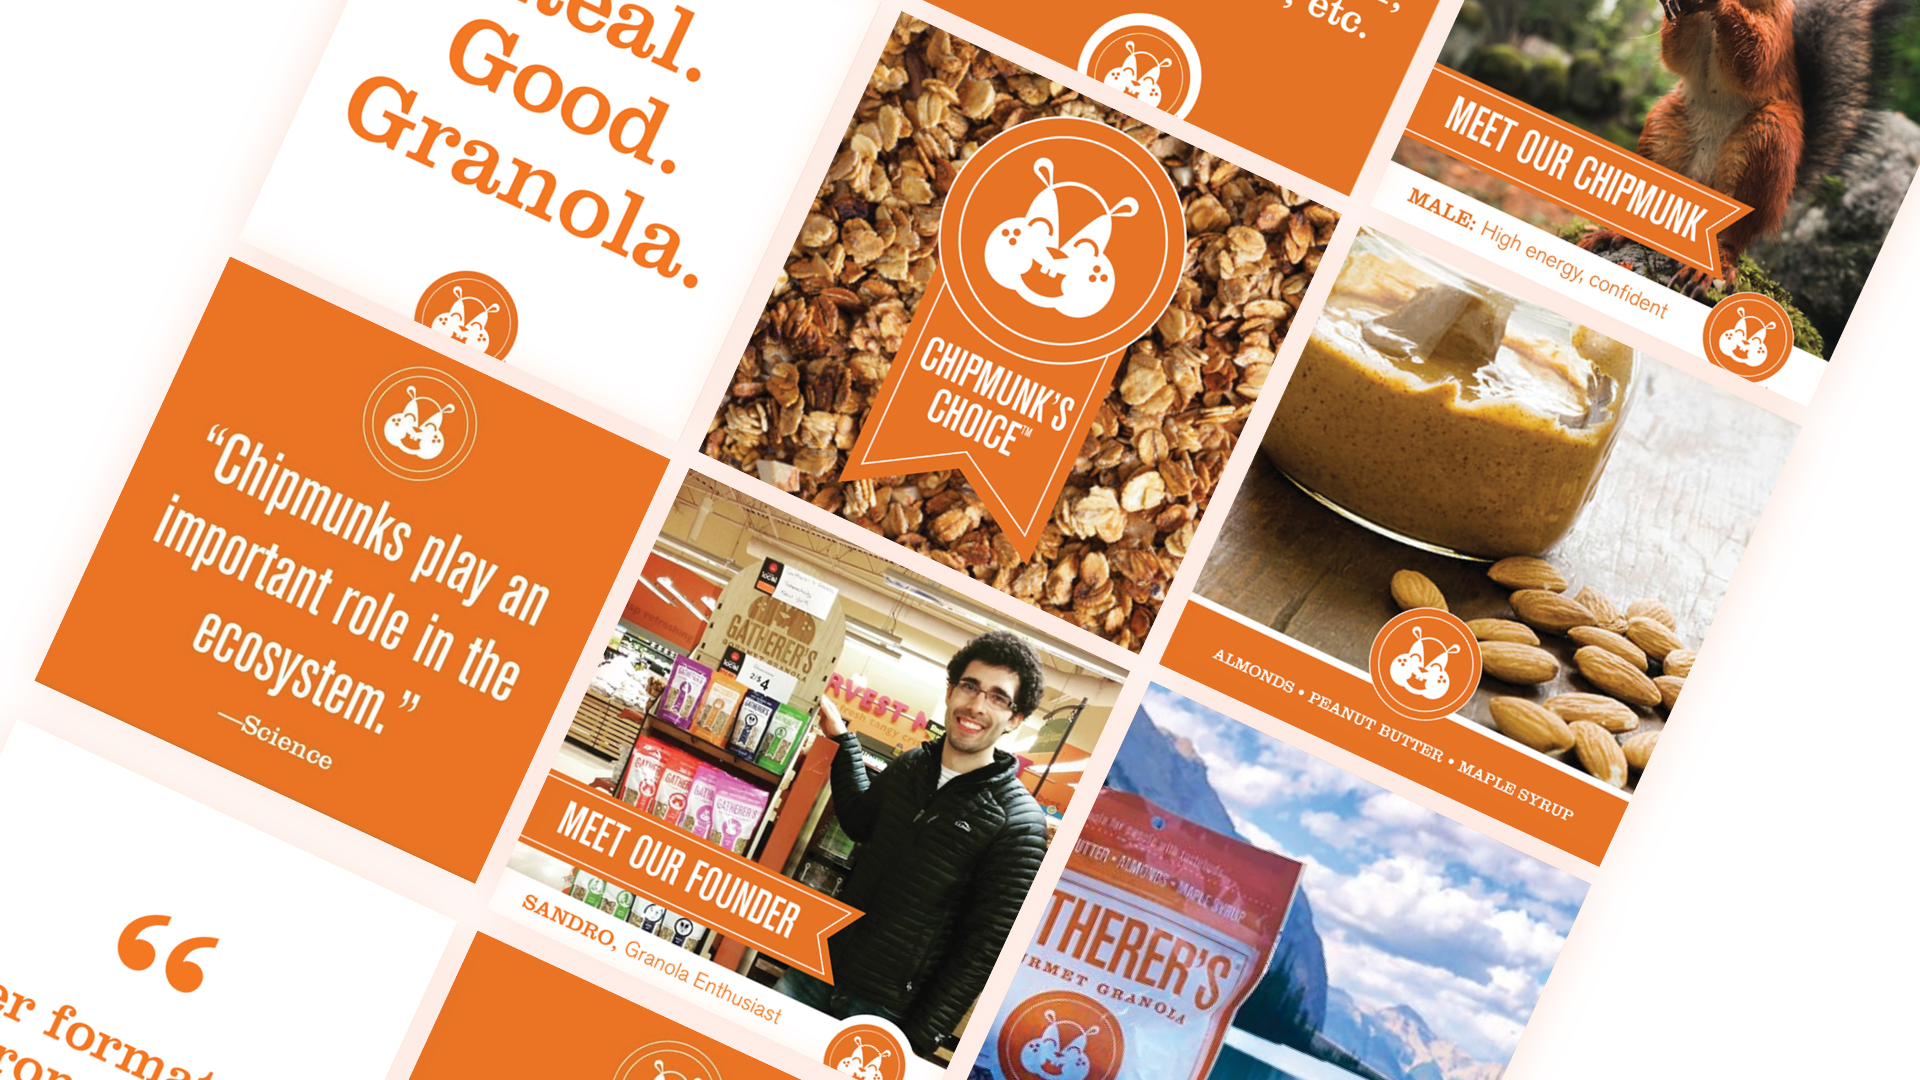 Real. Good. Granola.  - With orange as Gatherer's overarching brand color, we created various templates to showcase branded content. From employee profiles, quotes, and recipes, we created a bold look and feel for their various social media feeds.